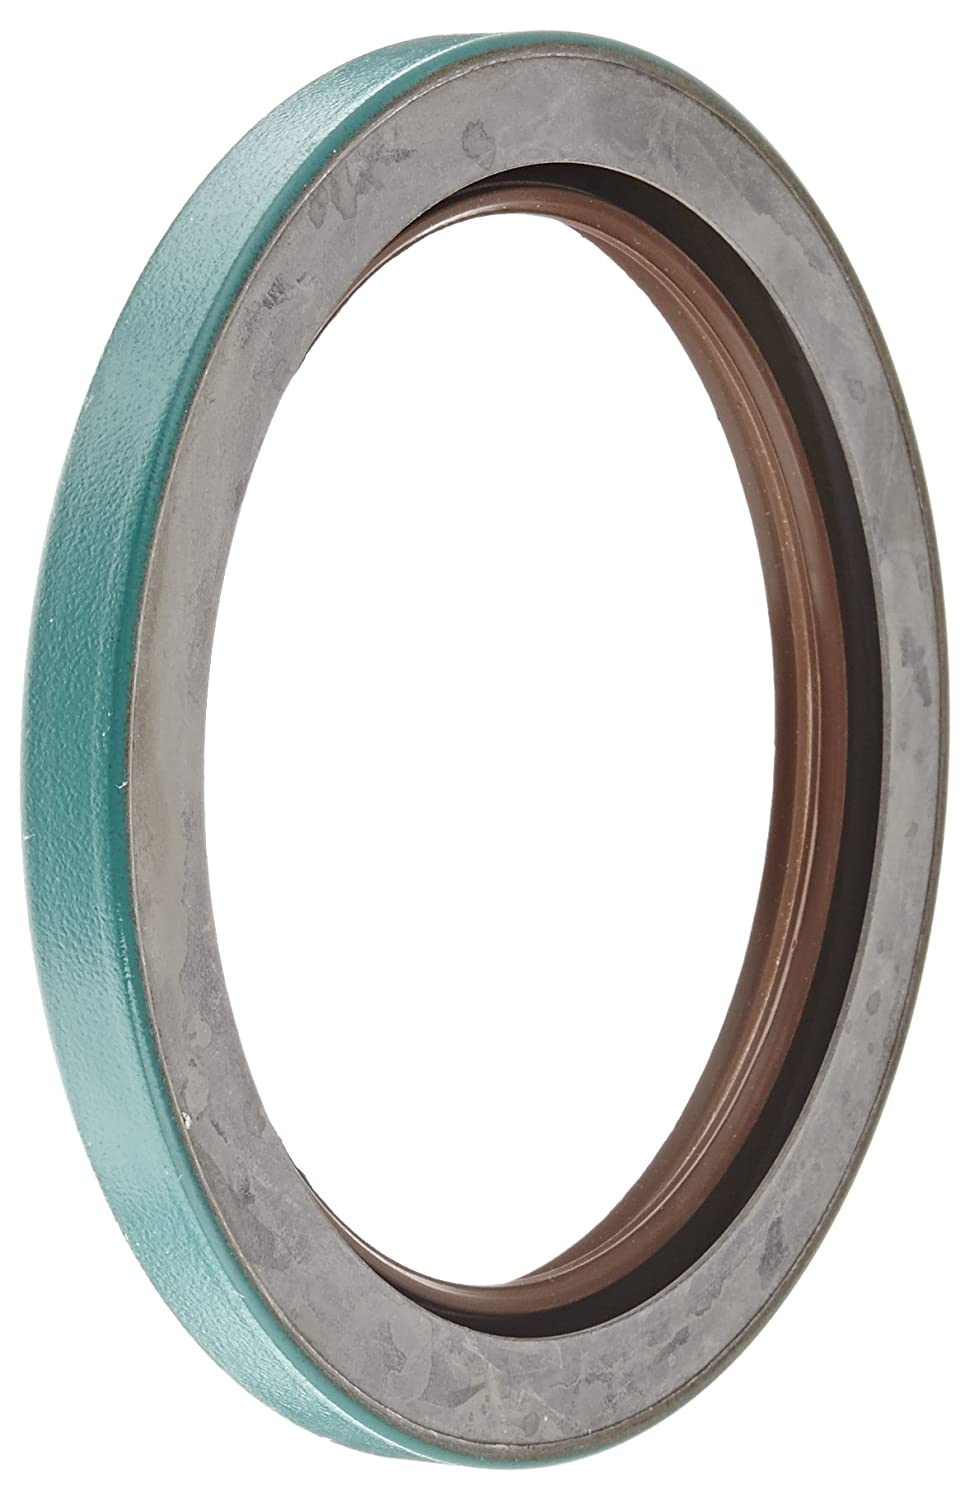 CRWHA1 Style 0.472 Width SKF 39304 LDS /& Small Bore Seal 5.126 Bore Diameter V Lip Code Inch 3.938 Shaft Diameter